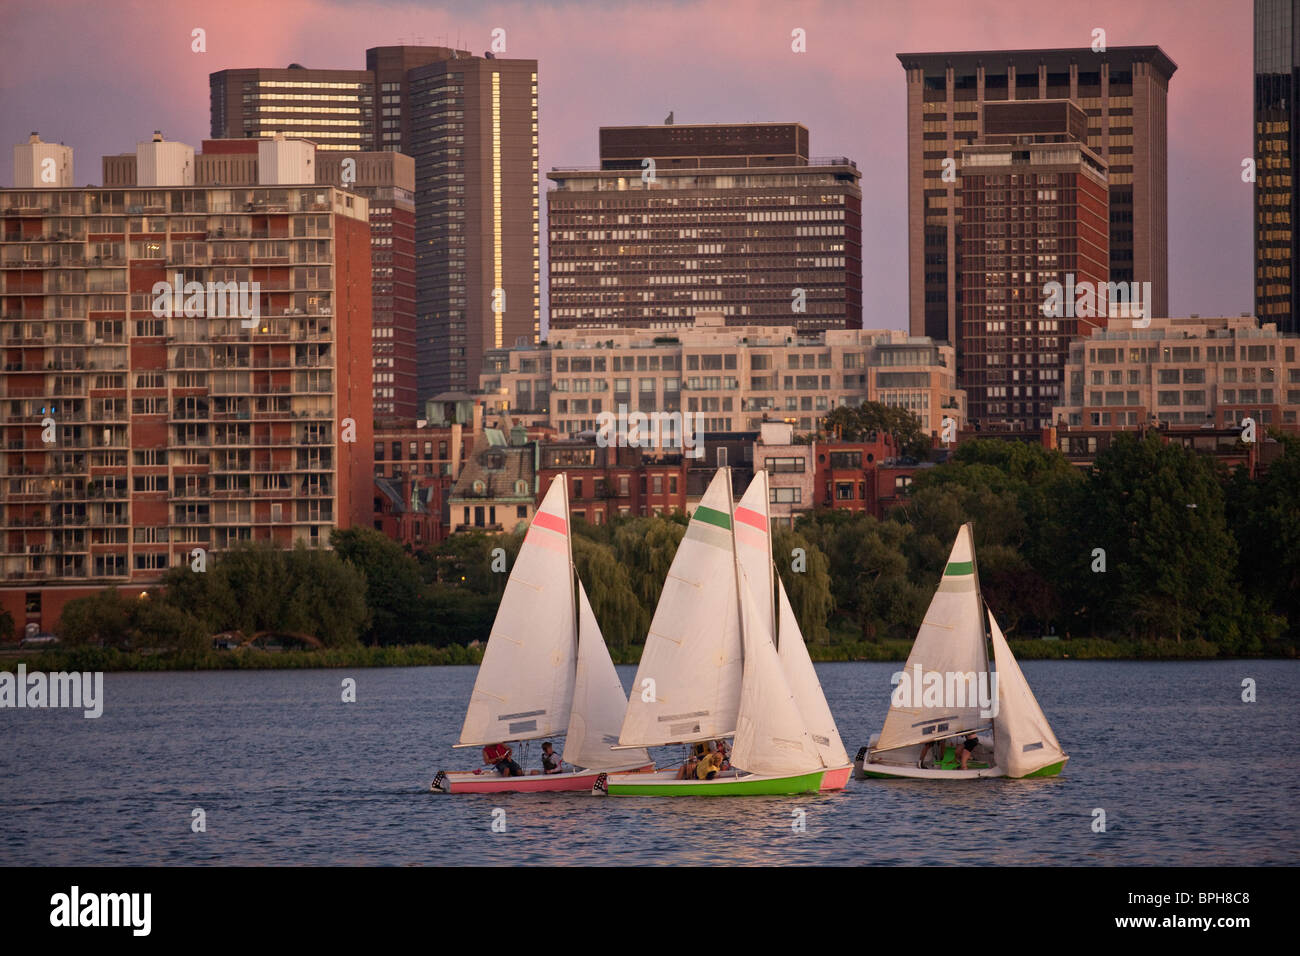 Sailboats with a city at the waterfront, Charles River, Back Bay, Boston, Massachusetts, USA - Stock Image